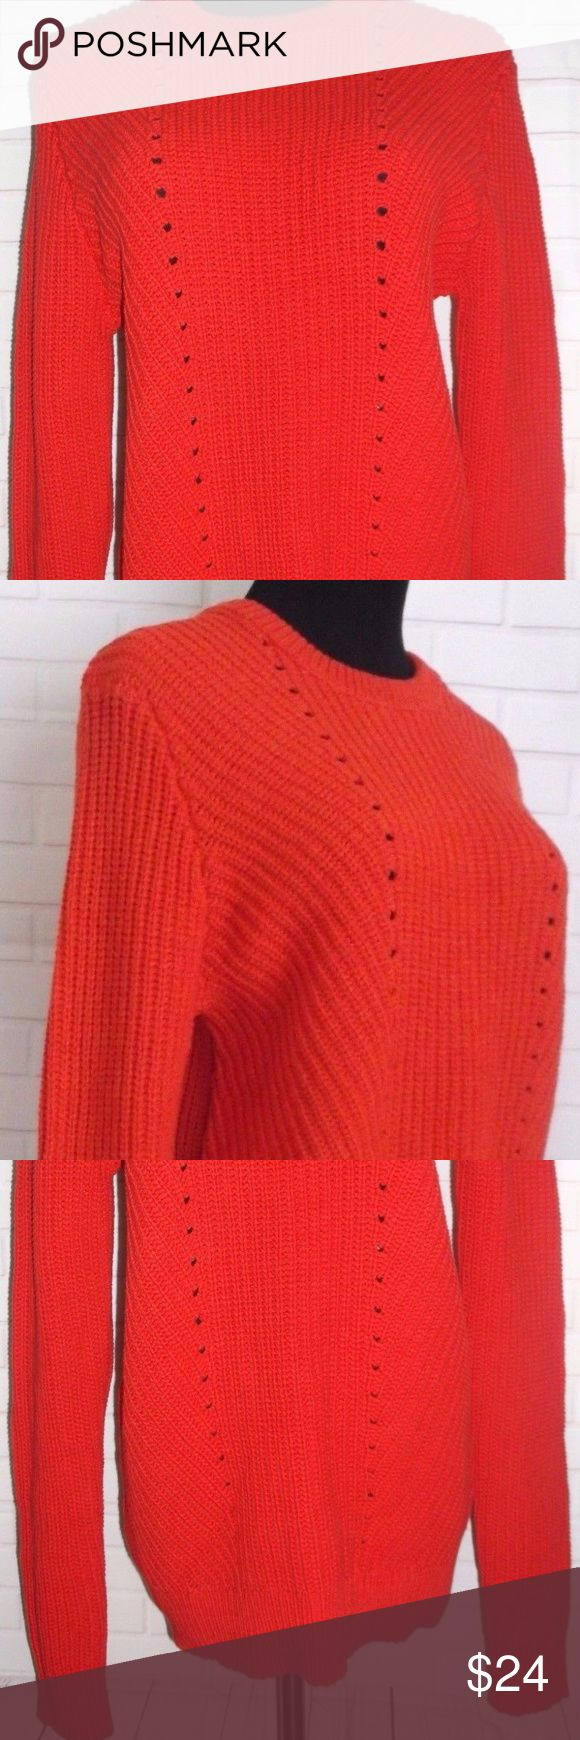 "Women's Zara Man Red Sweater Size Large New without Tags. Excellent condition. 100% Cotton. Measurements: Bust - 19"" Sleeves - 27"" Shoulder to Shoulder - 14.5"" Back Length - 25"" Zara Man Sweaters Crew & Scoop Necks"